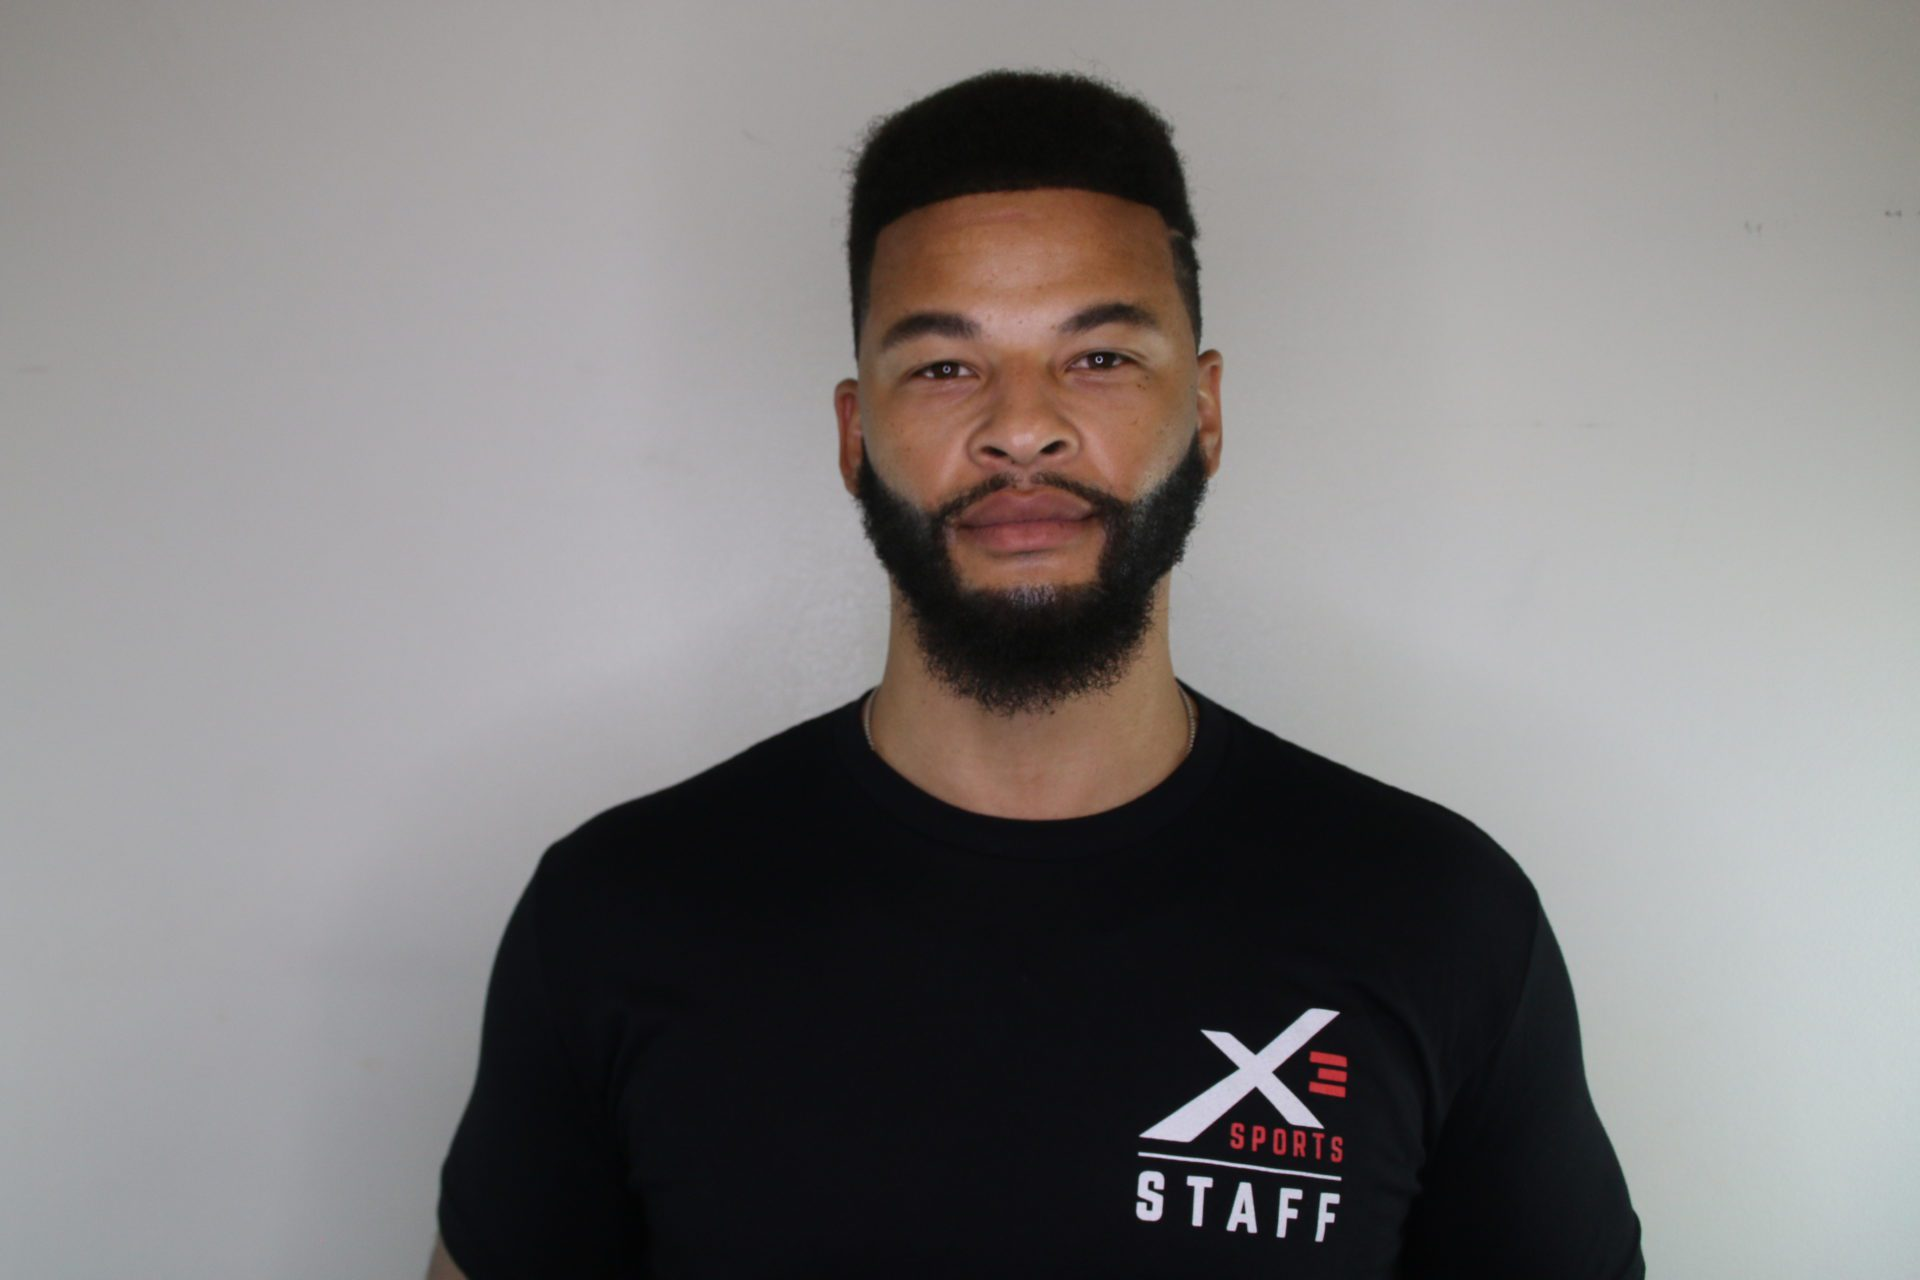 Michael T. Whitehead | X3 Sports Employee | X3 Sports